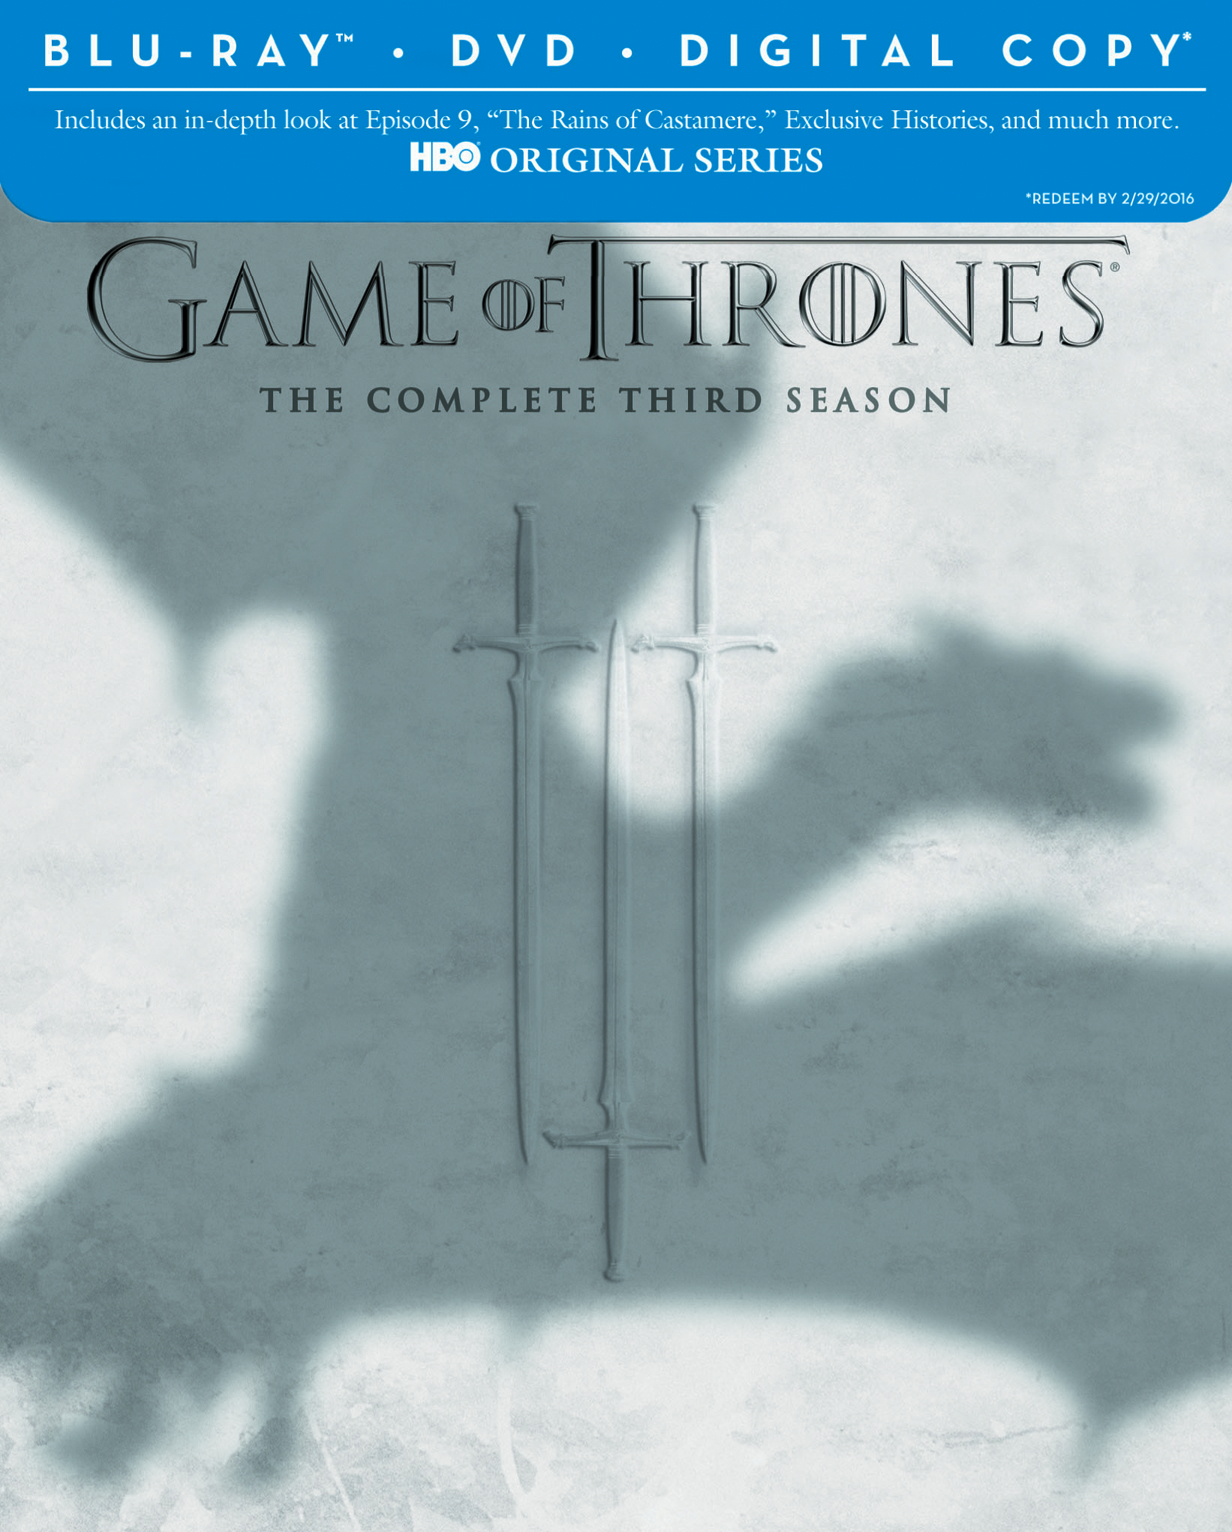 GAME OF THRONES BD + DVD SEA 03